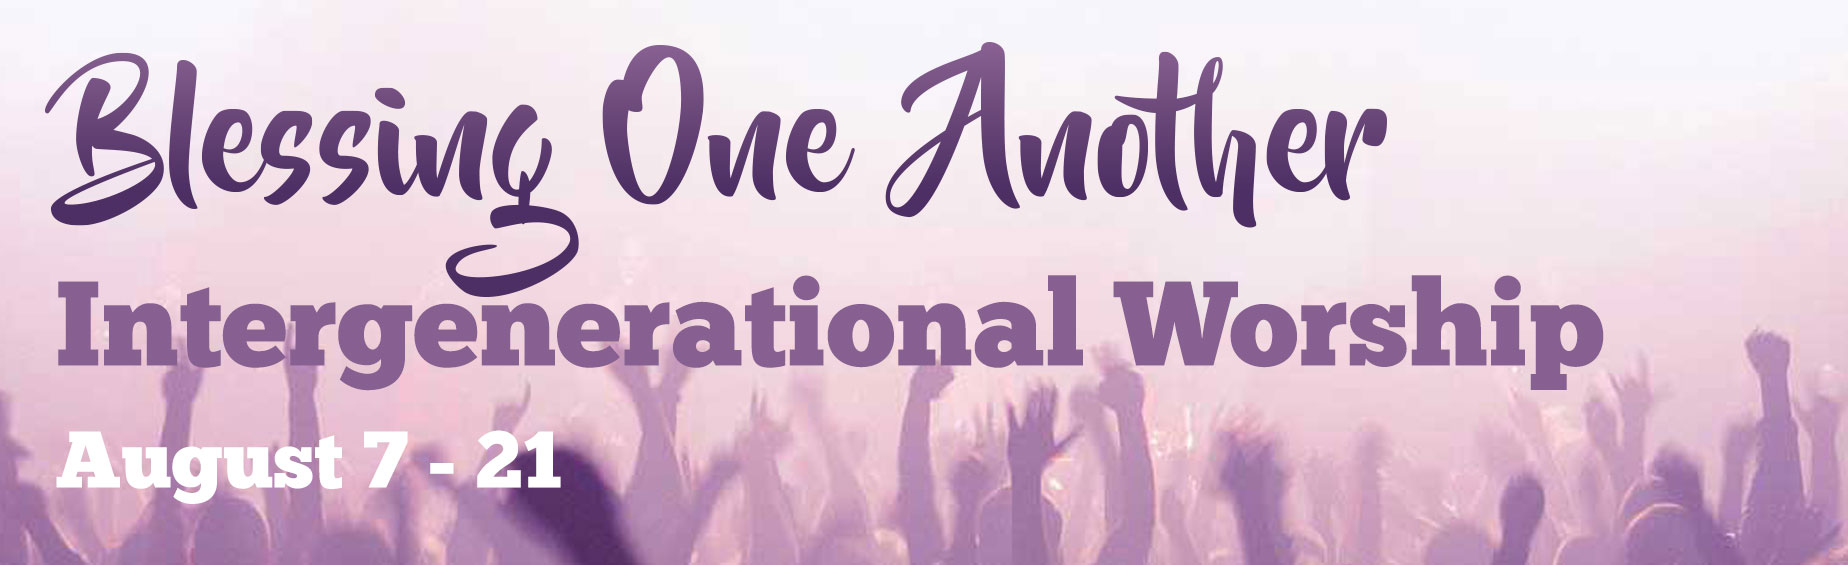 Blessing One Another (Intergenerational Worship 2016)